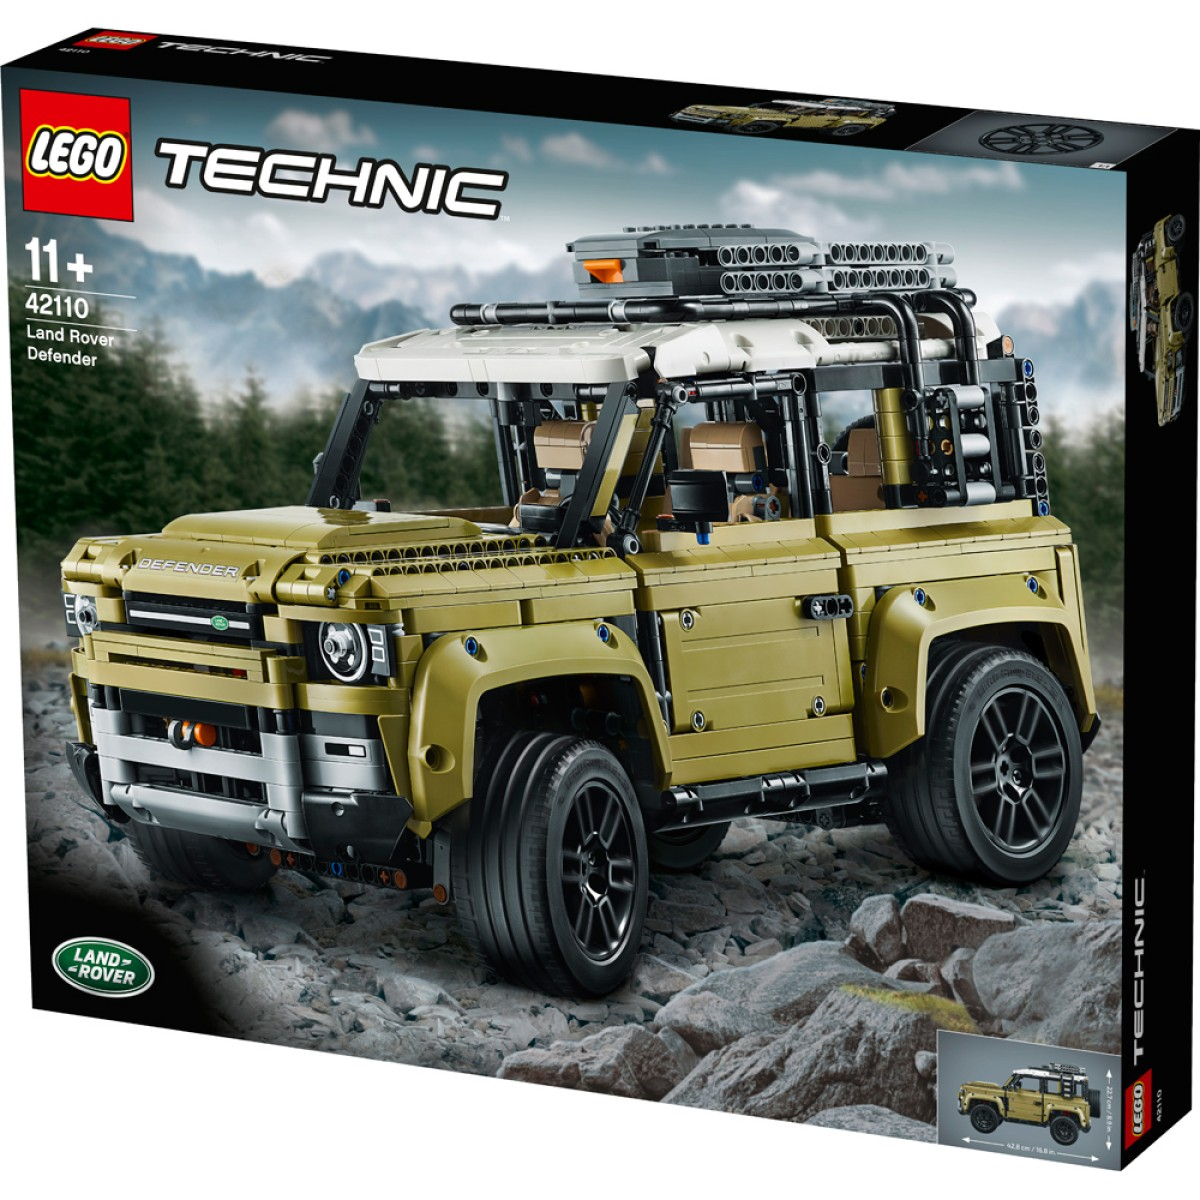 LEGO Technic Land Rover Defender 42110 - Game On Toymaster Store